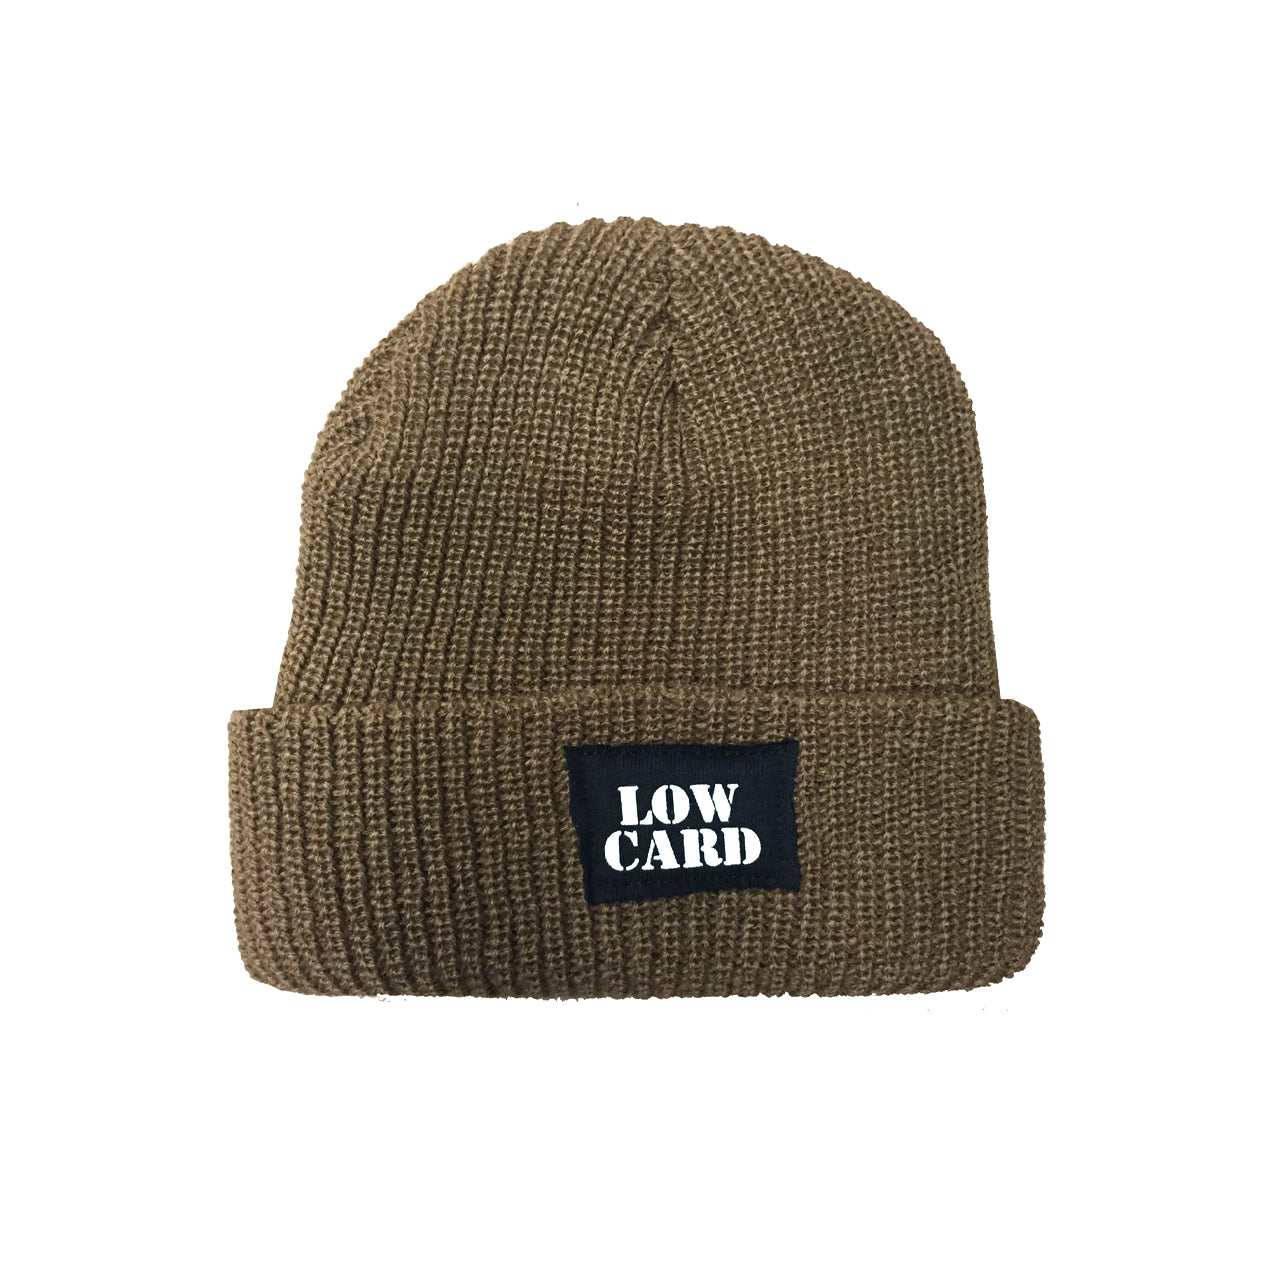 Low Card - Knit Beanie - Light Brown